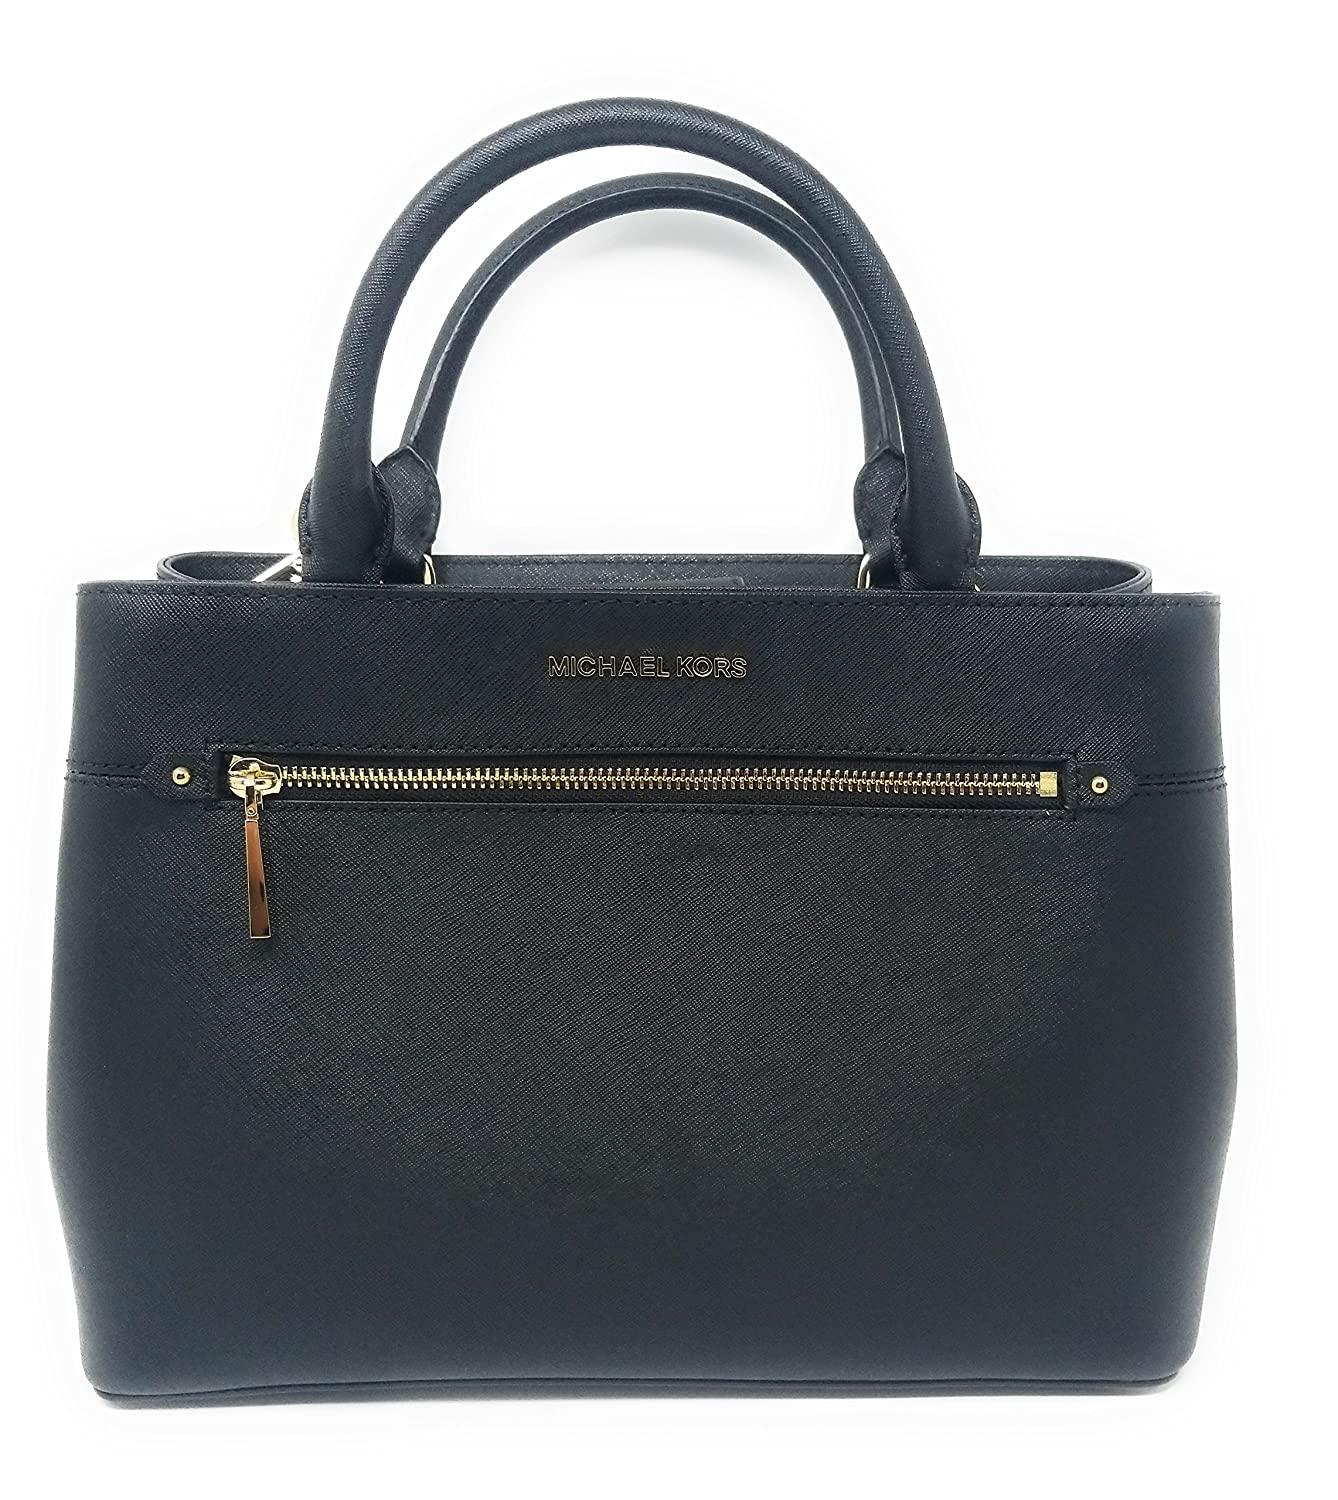 5abb3adad8ac Amazon.com: MICHAEL Michael Kors Women's HAILEE Medium Satchel Leather  Handbag (Black): Shoes